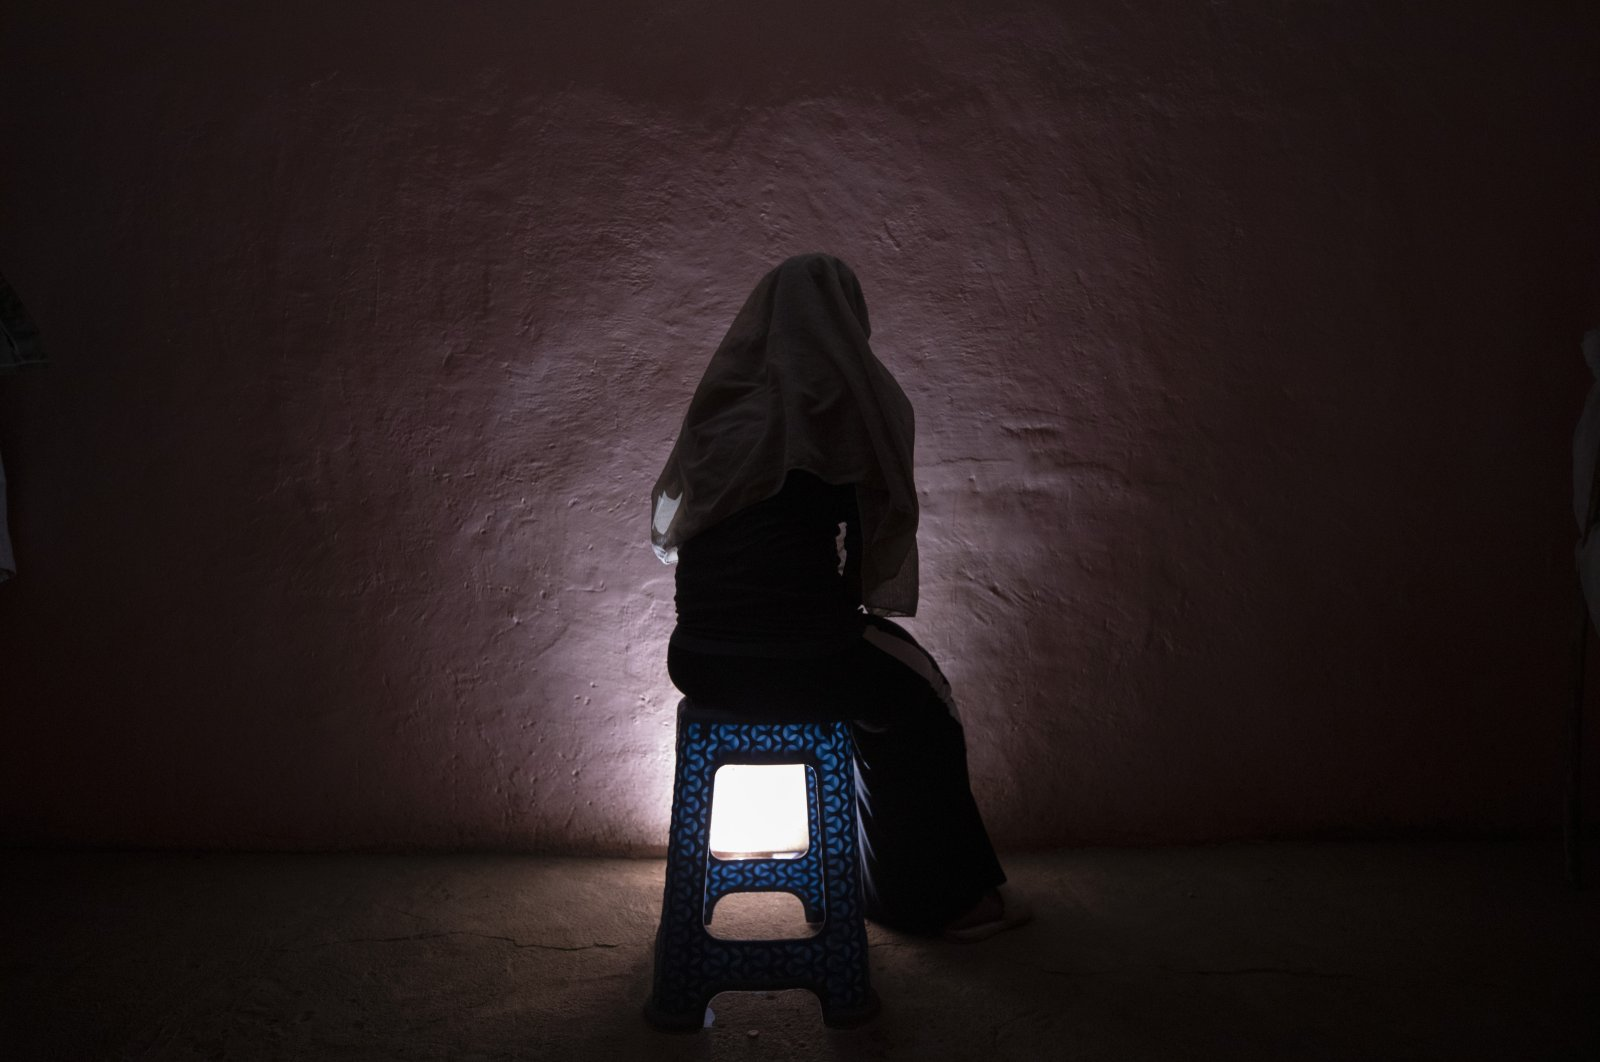 A Tigrayan refugee rape victim who fled the conflict in Ethiopia's Tigray sits for a portrait in eastern Sudan near the Sudan-Ethiopia border, on March 20, 2021. (AP Photo)